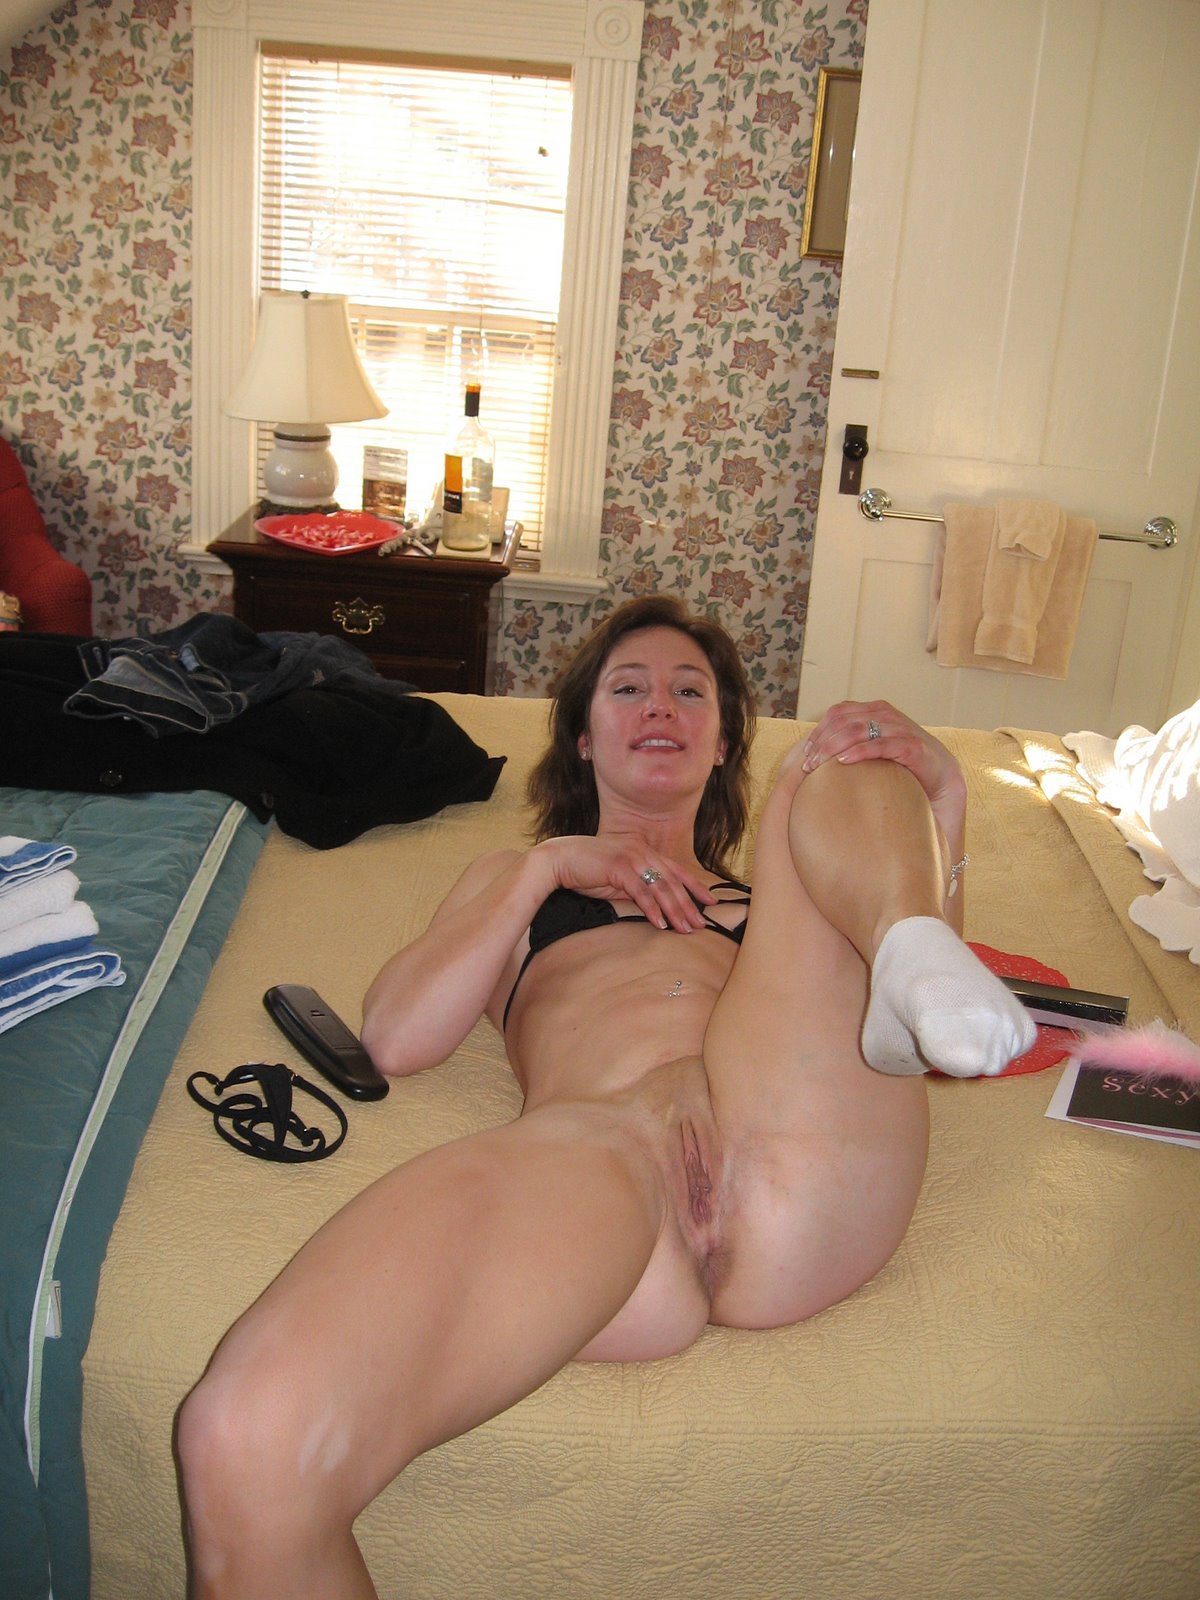 Brilliant idea Amateur milf hotel room sex